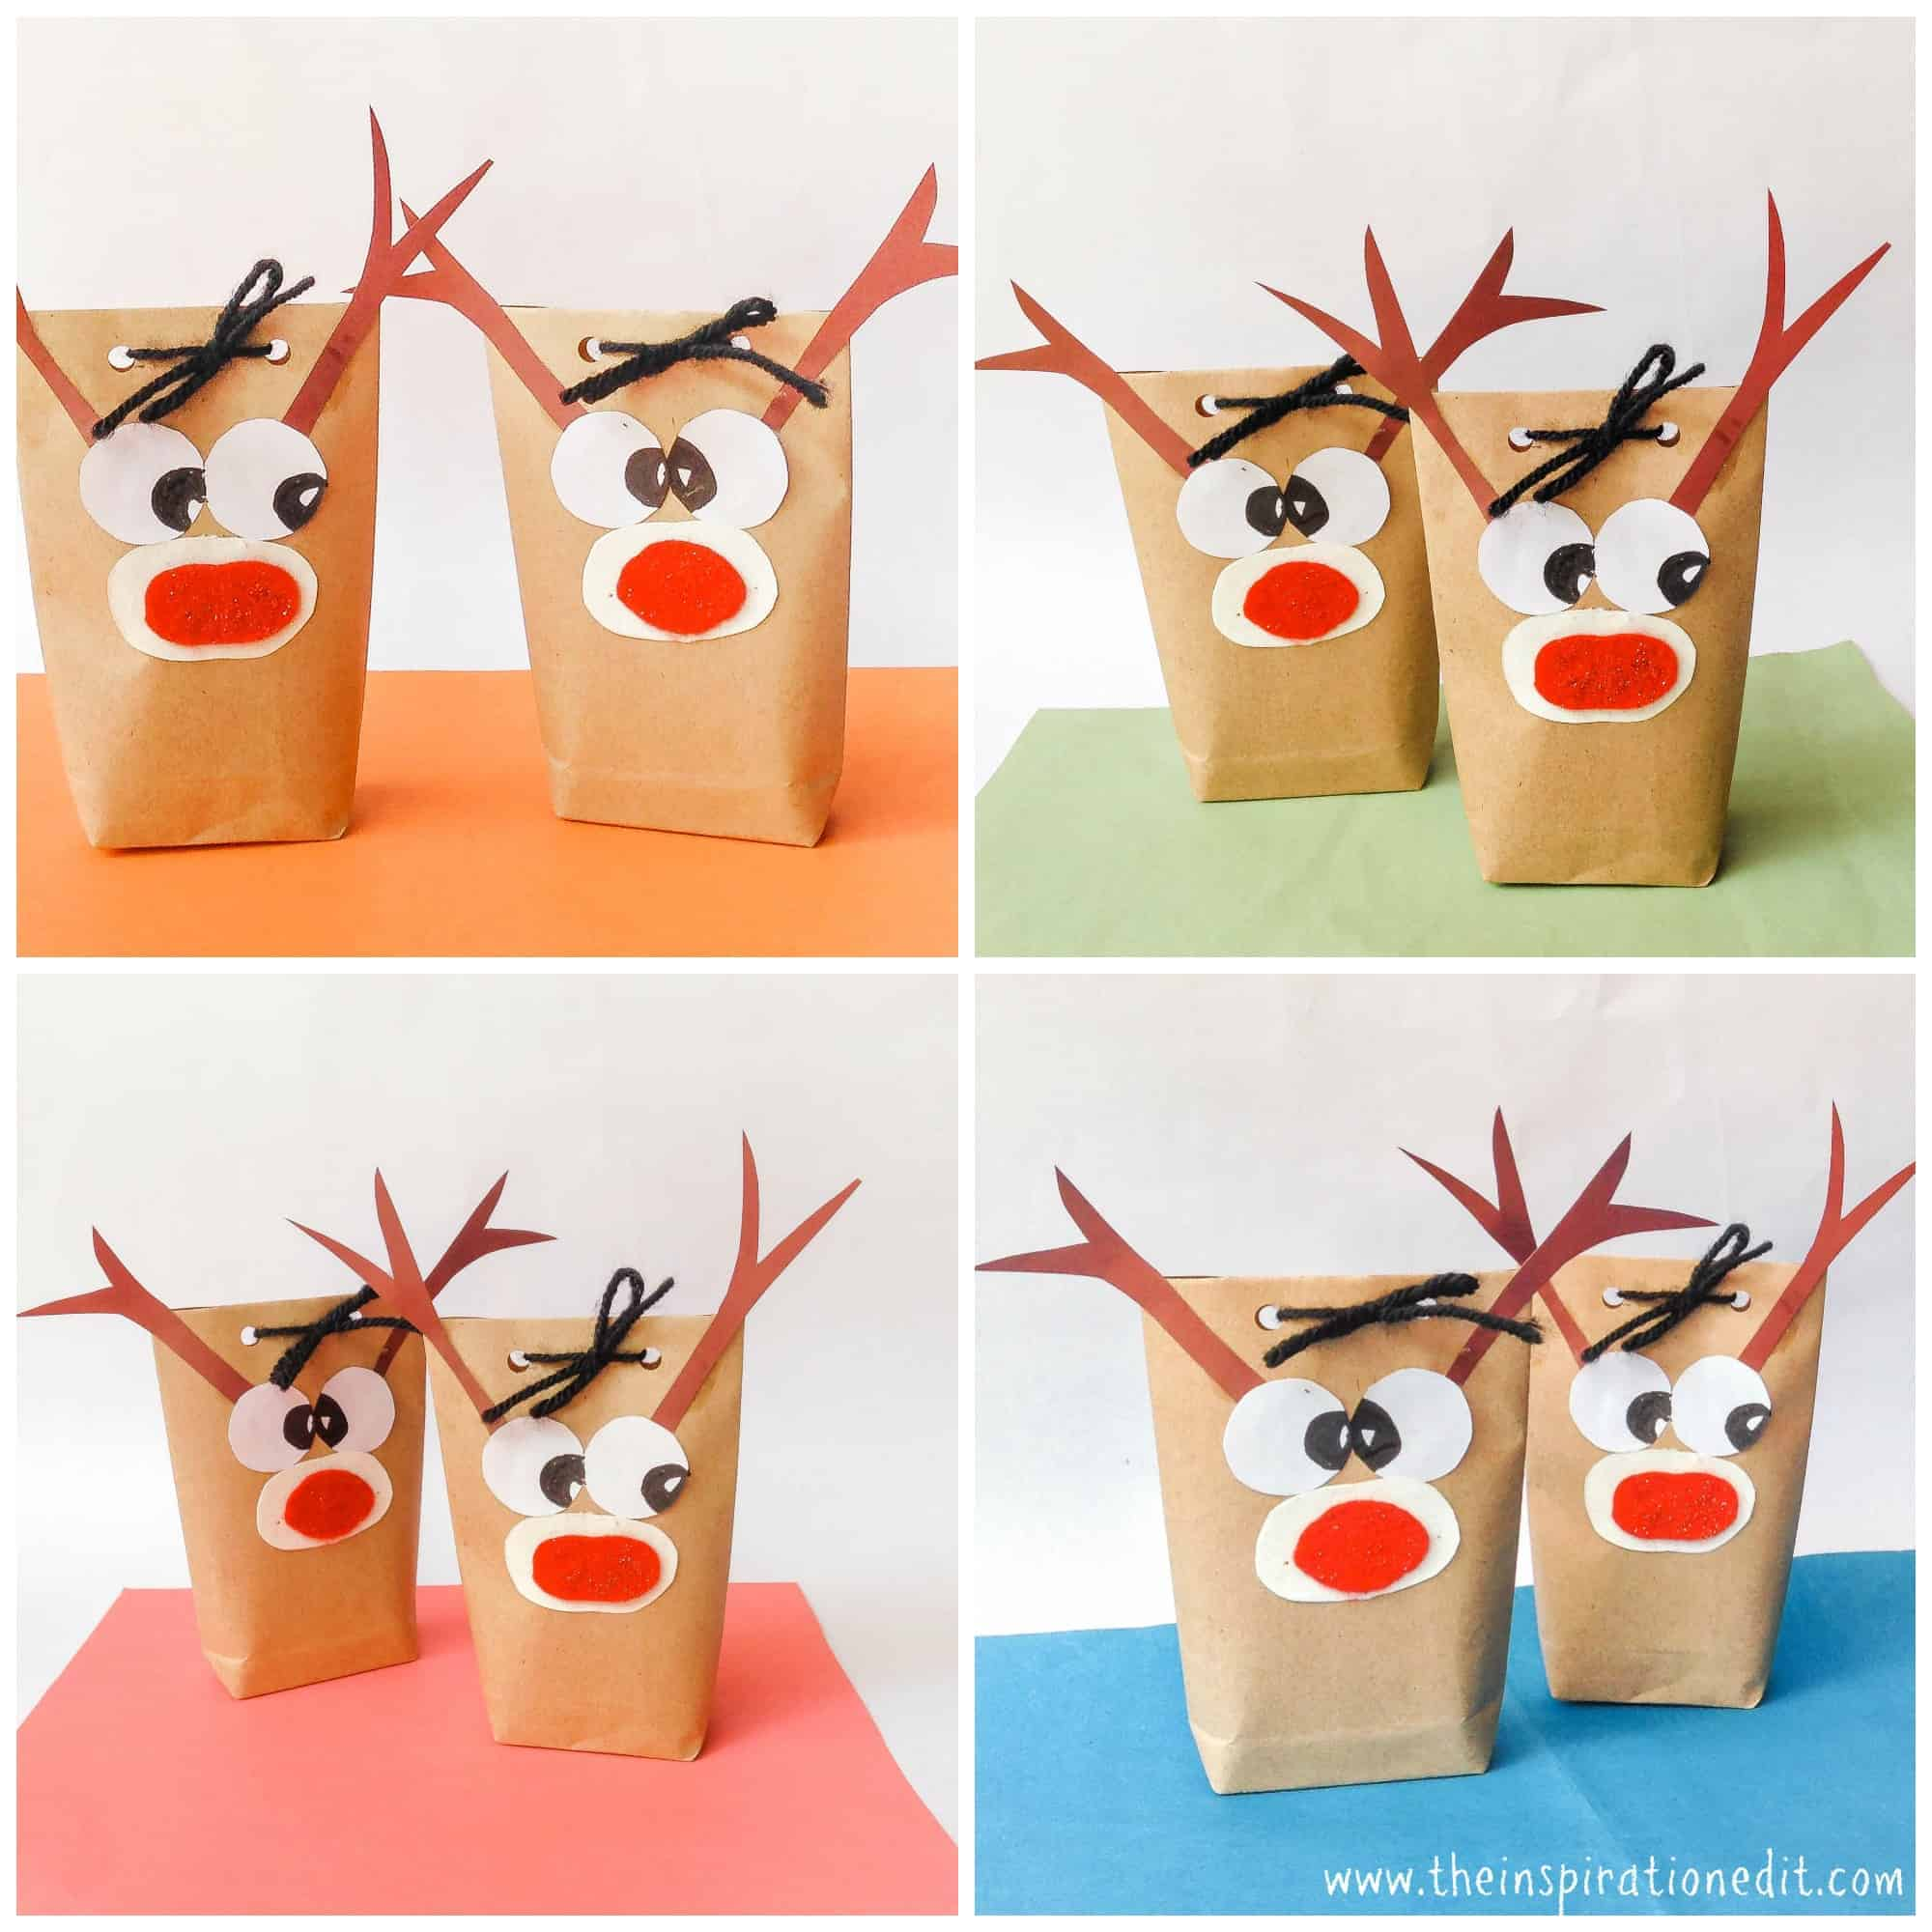 DIY Paper Reindeer Craft